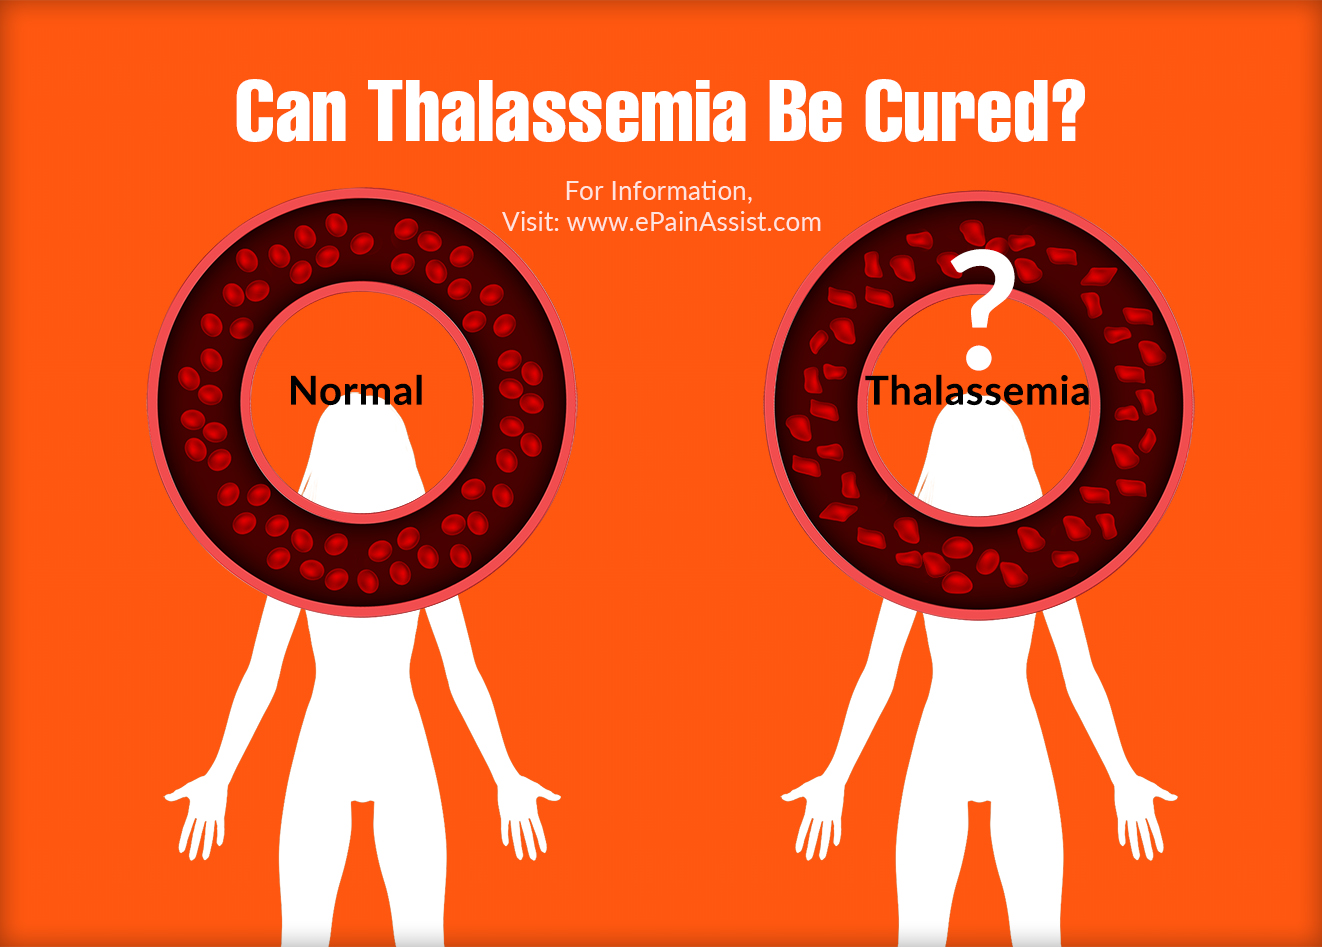 Can Thalassemia Be Cured?